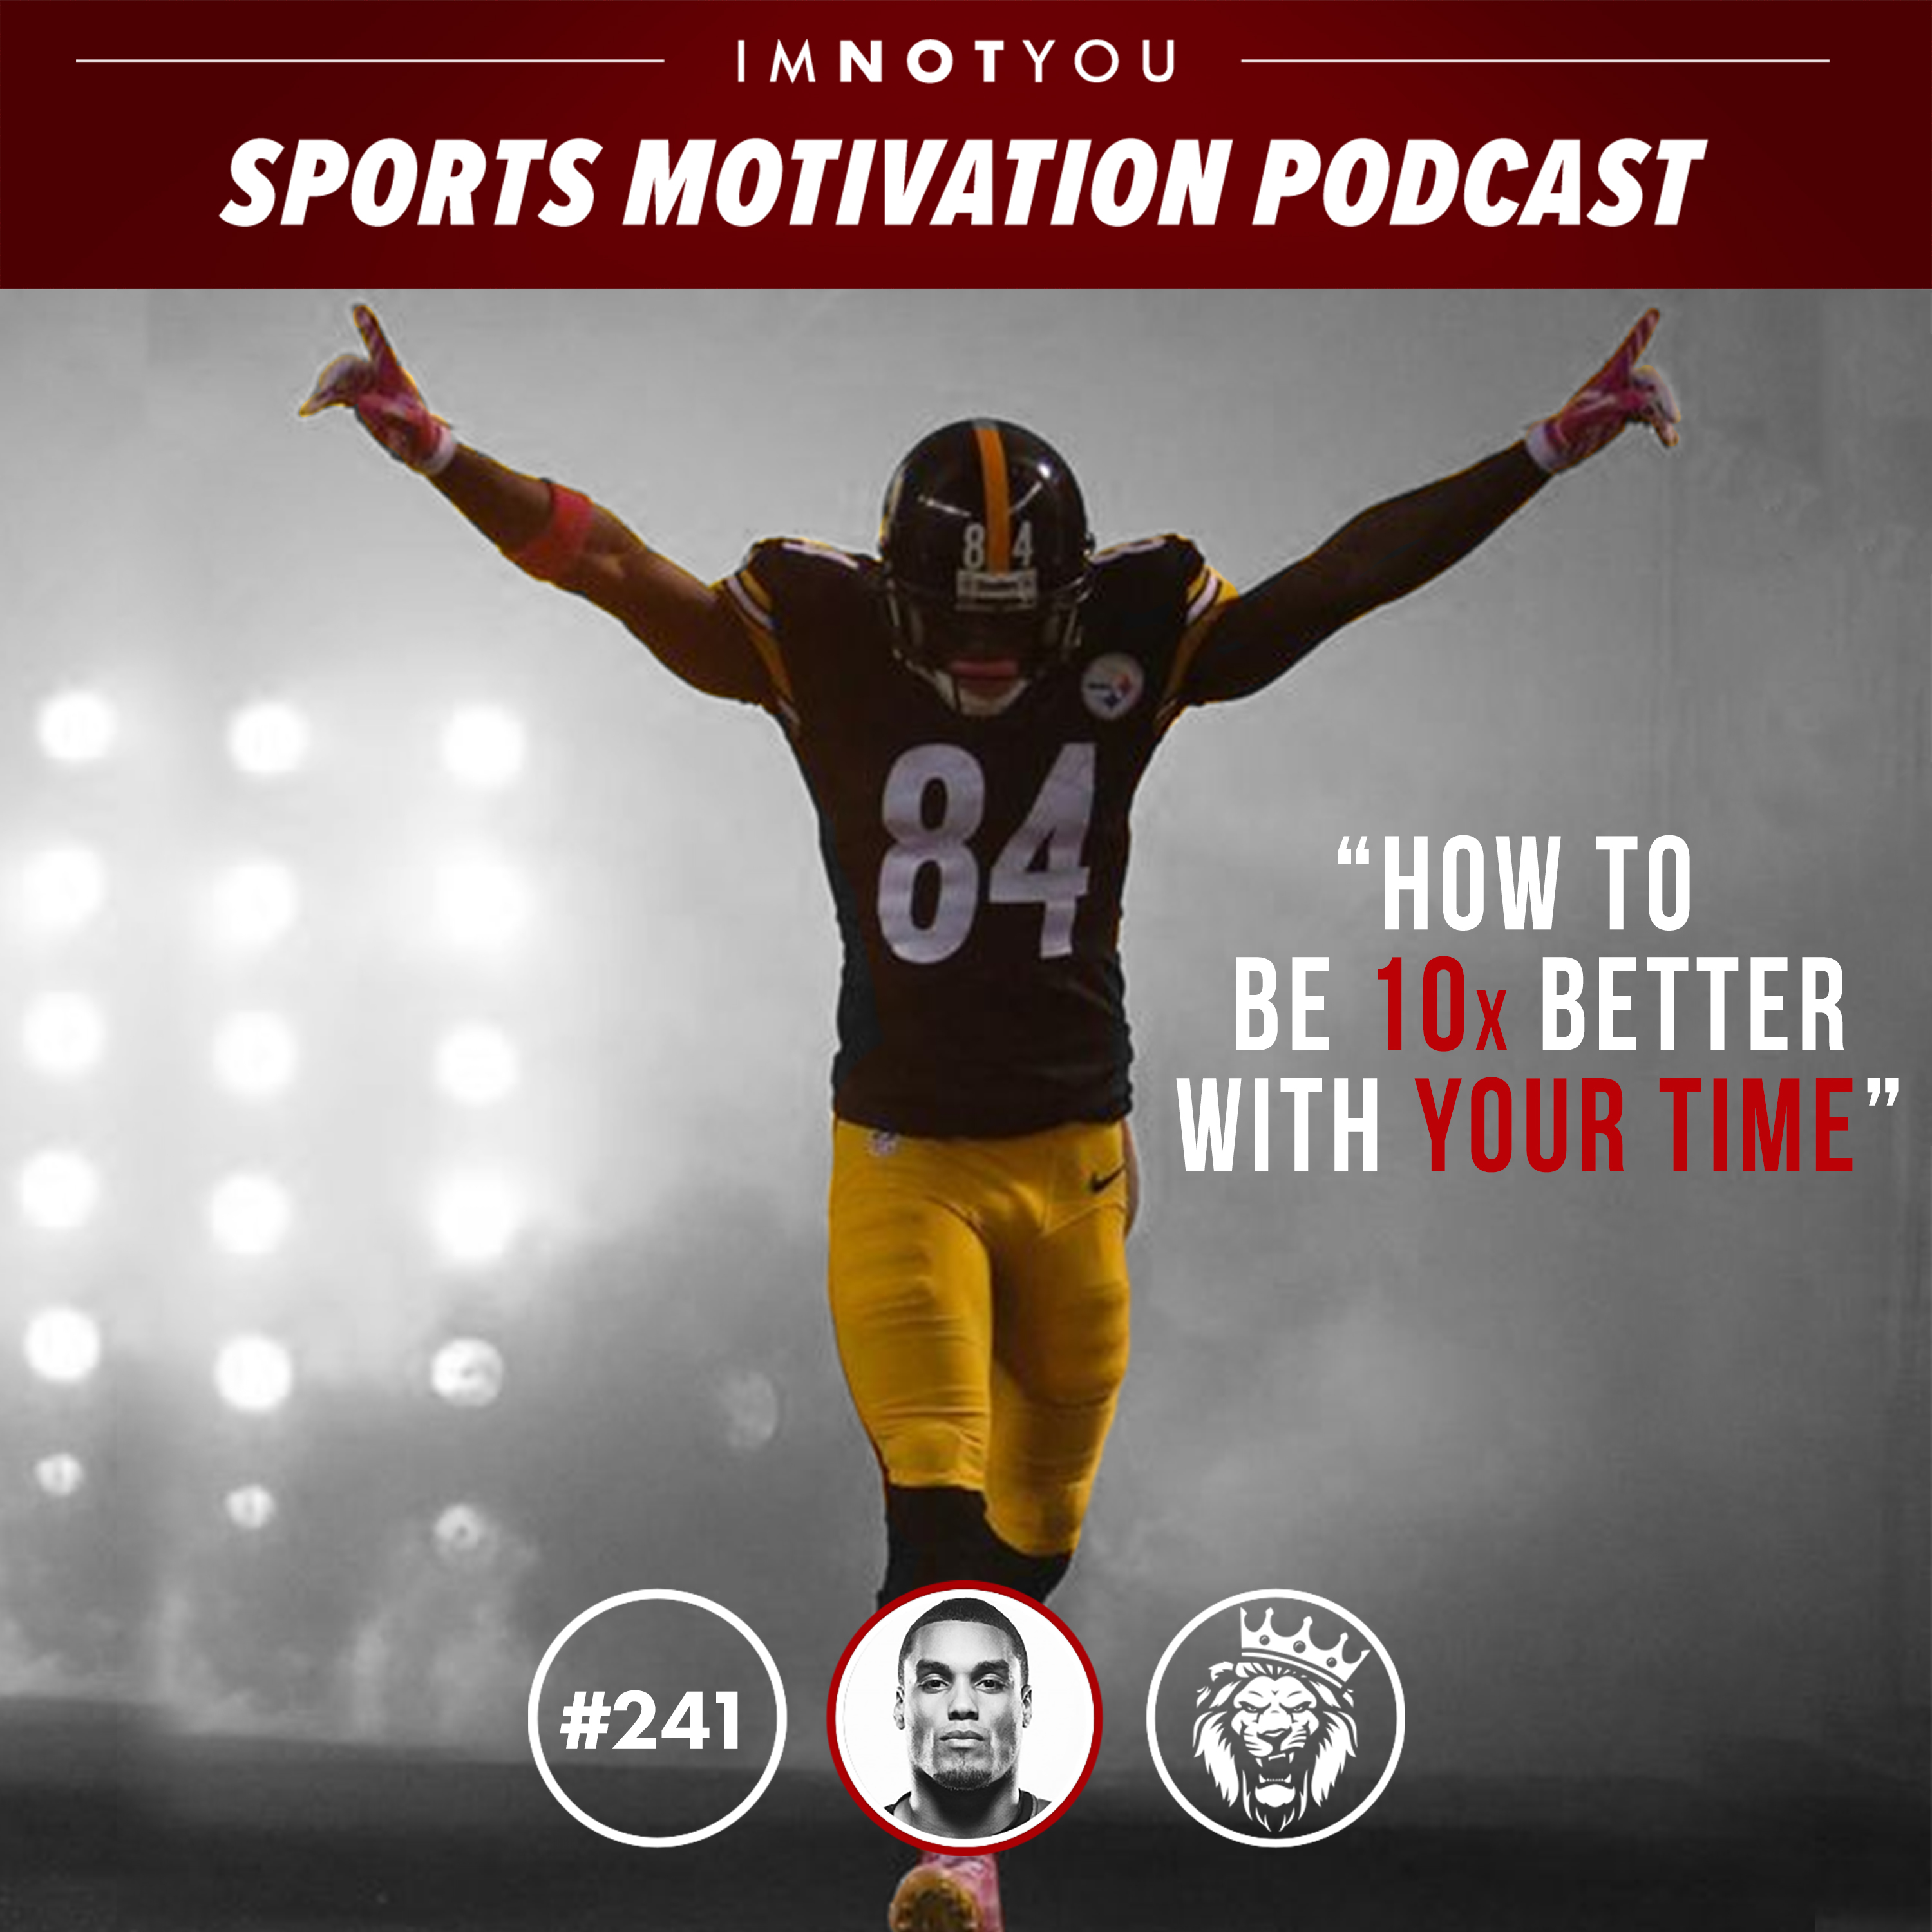 241: How to Be 10x Better with your Time